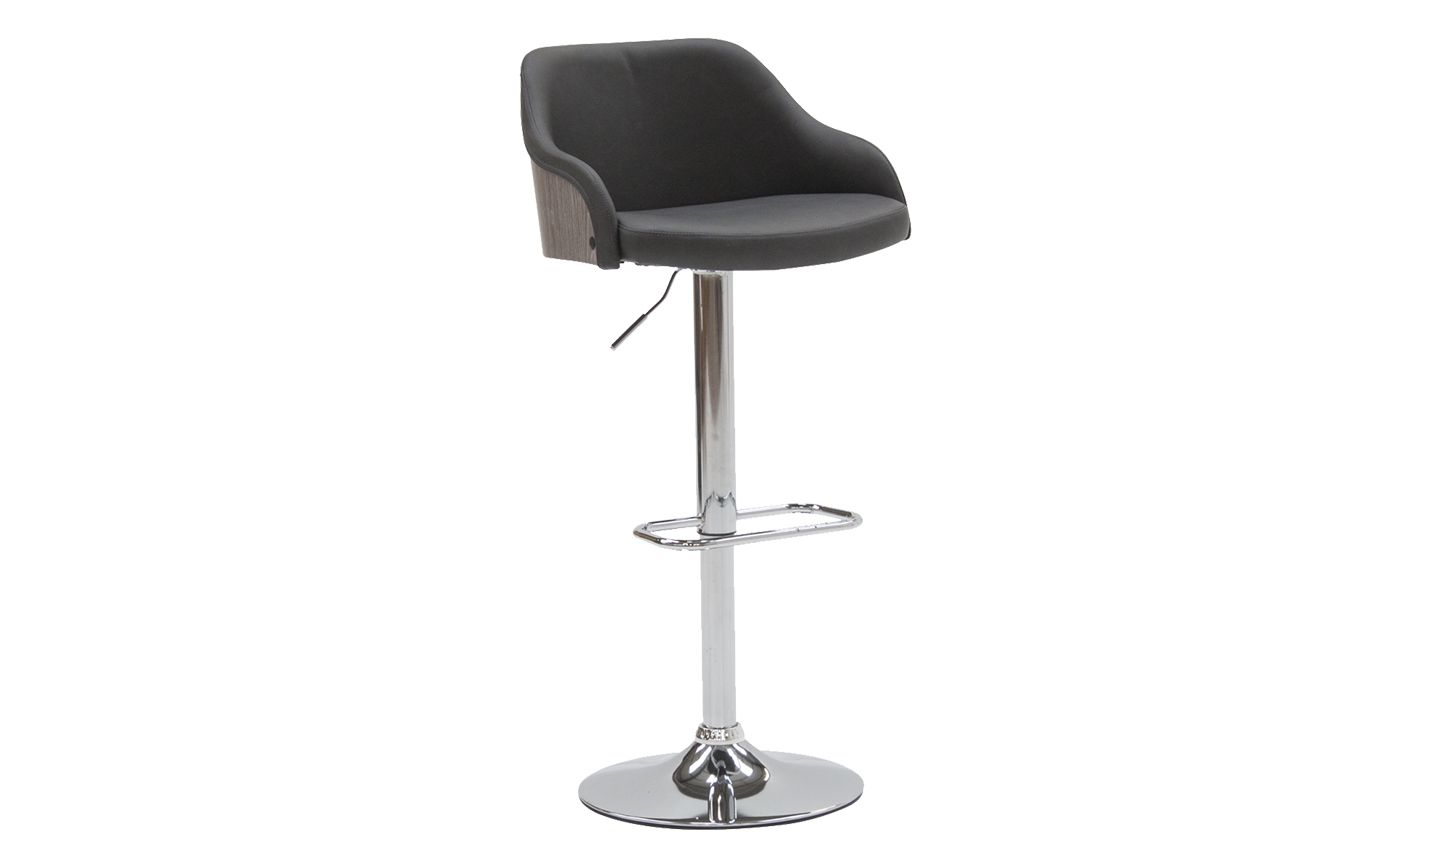 Superb Cassino Charcoal Faux Leather With Stainless Steel Bar Stool 218Vd464 Short Links Chair Design For Home Short Linksinfo